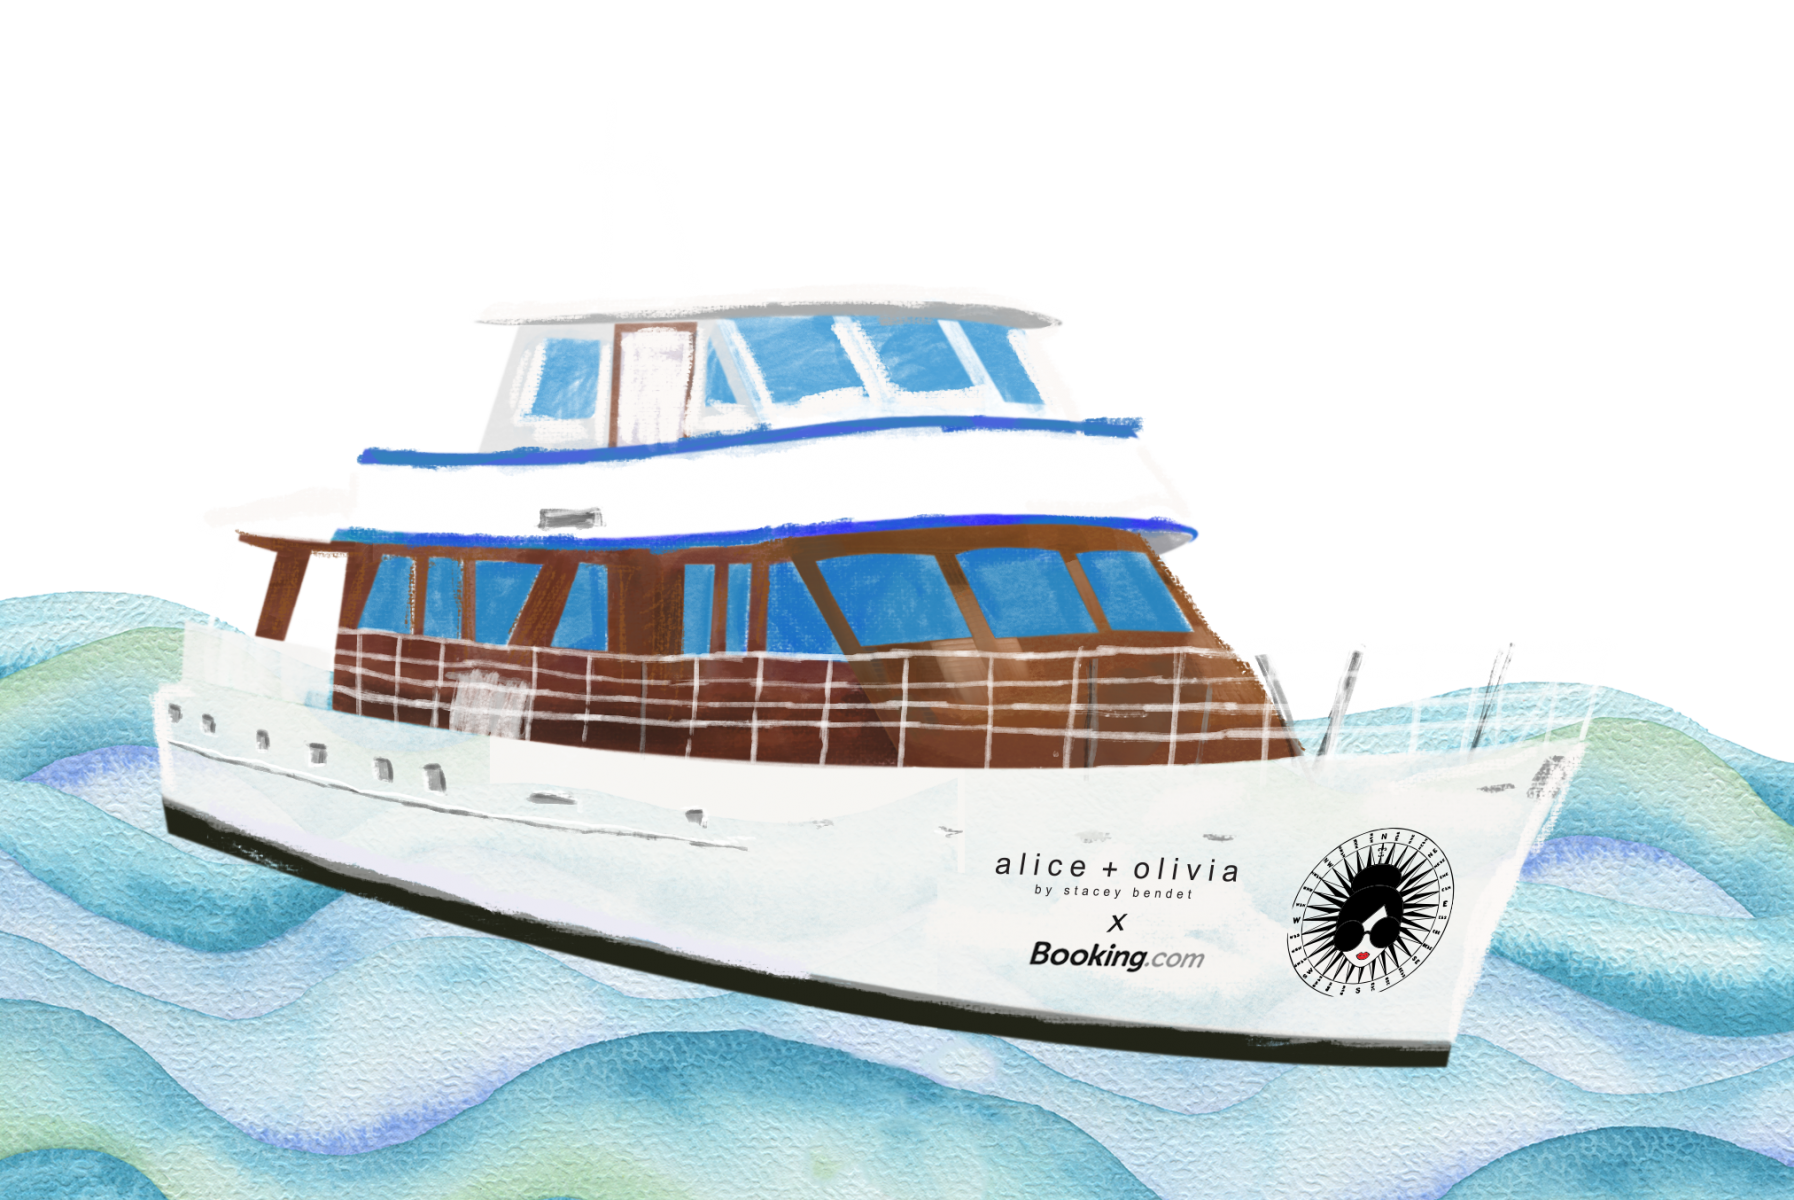 alice + olivia yacht illustration